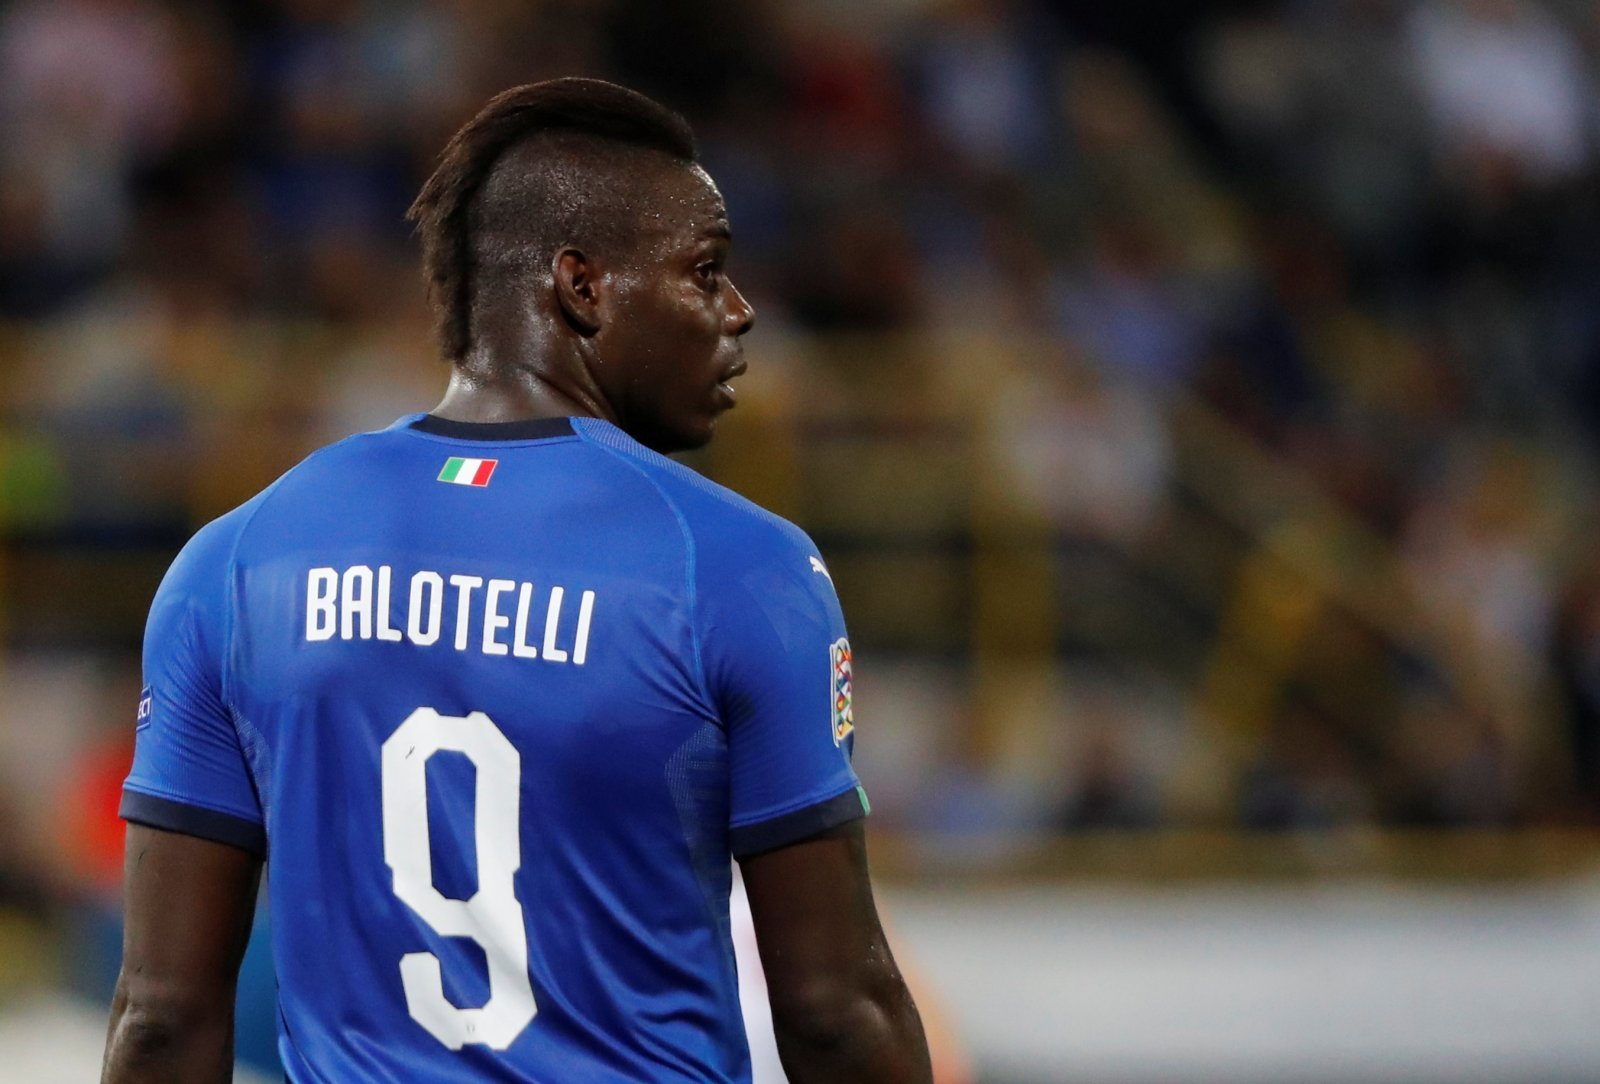 West Ham fans take to Twitter to call for Balotelli snub